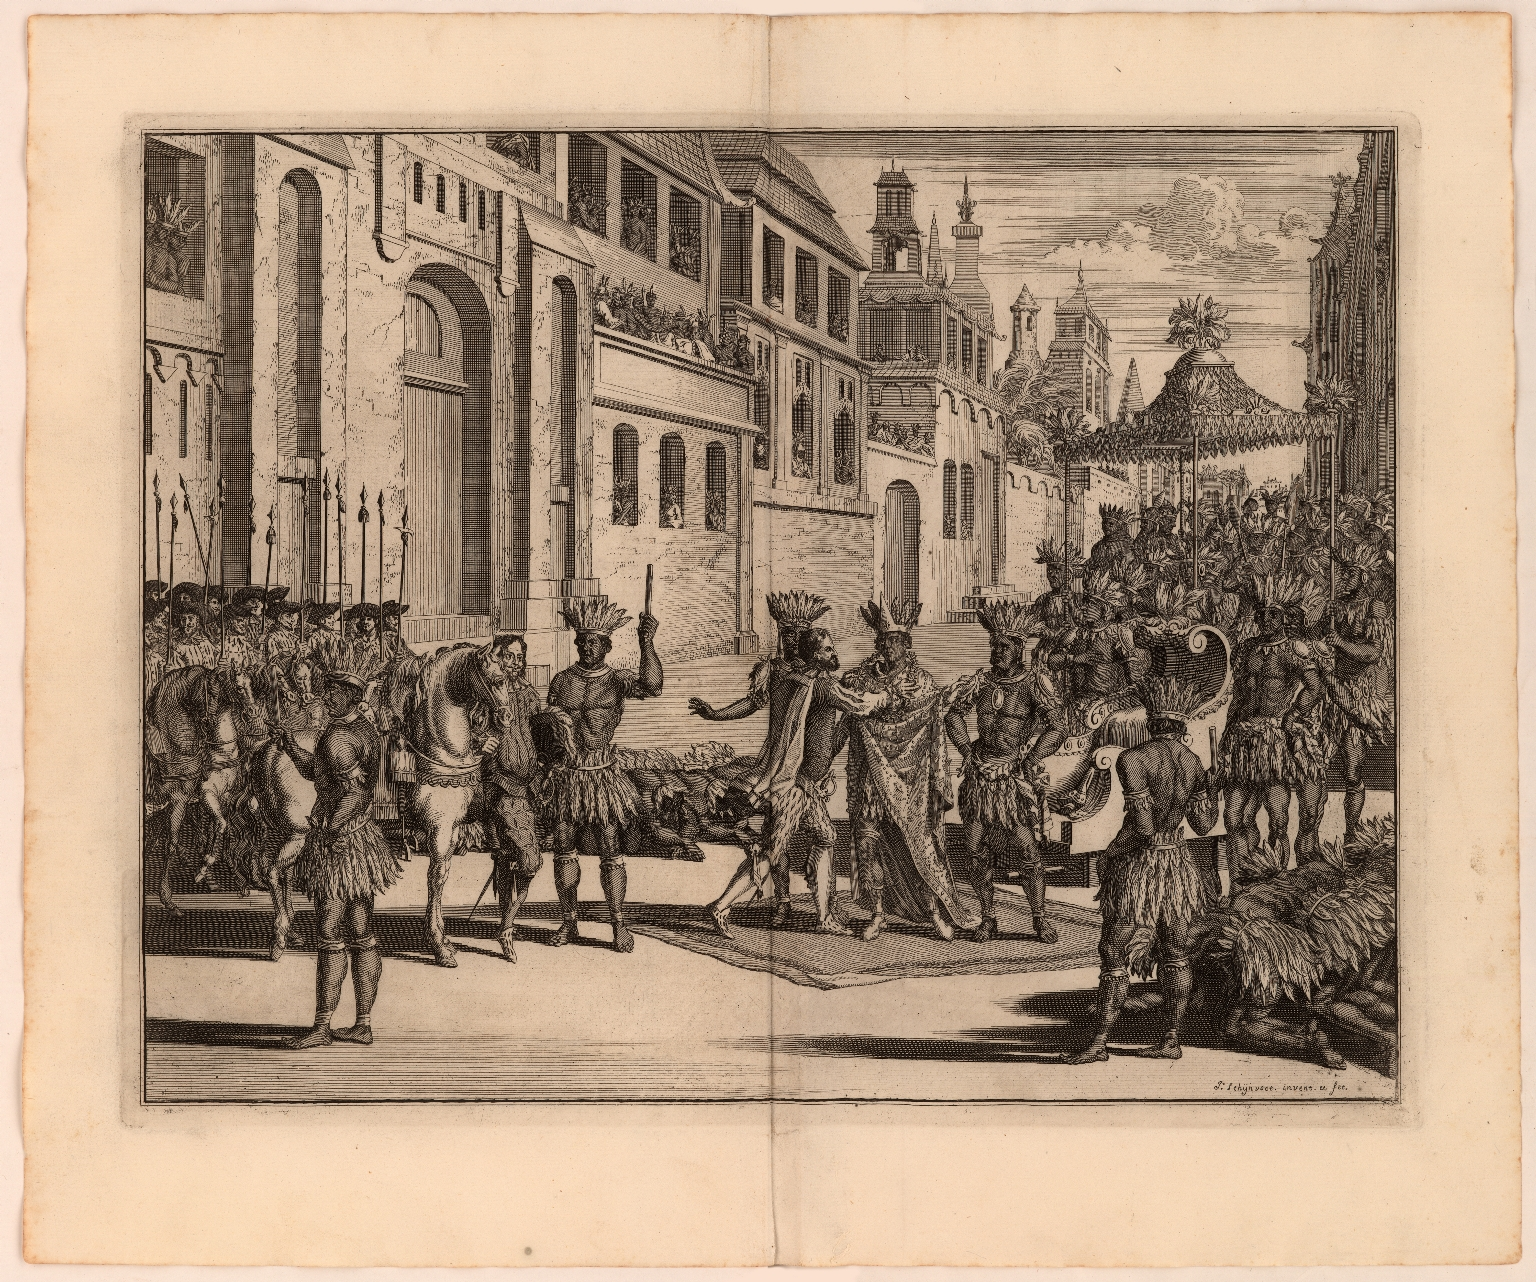 [Cortés greets native American noble in Mexico]